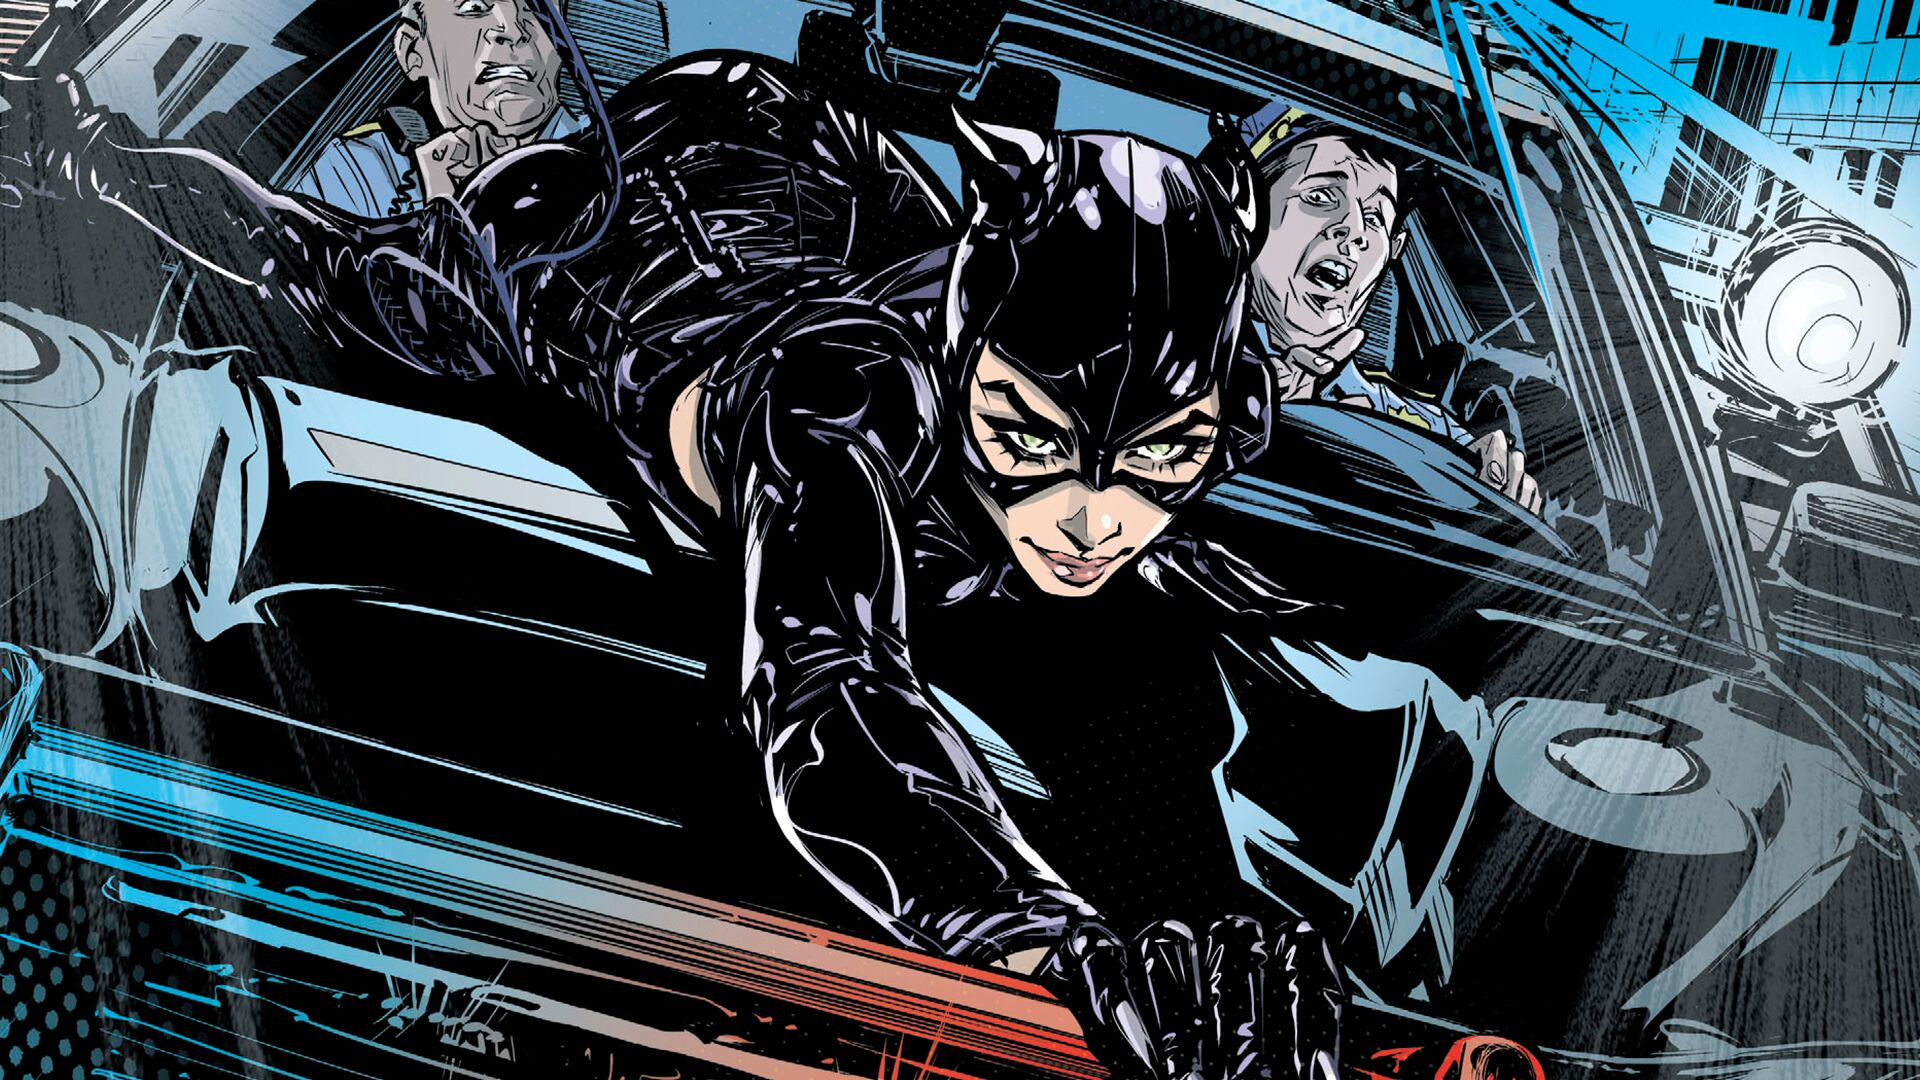 The Batman: Rumored shortlist for Catwoman revealed